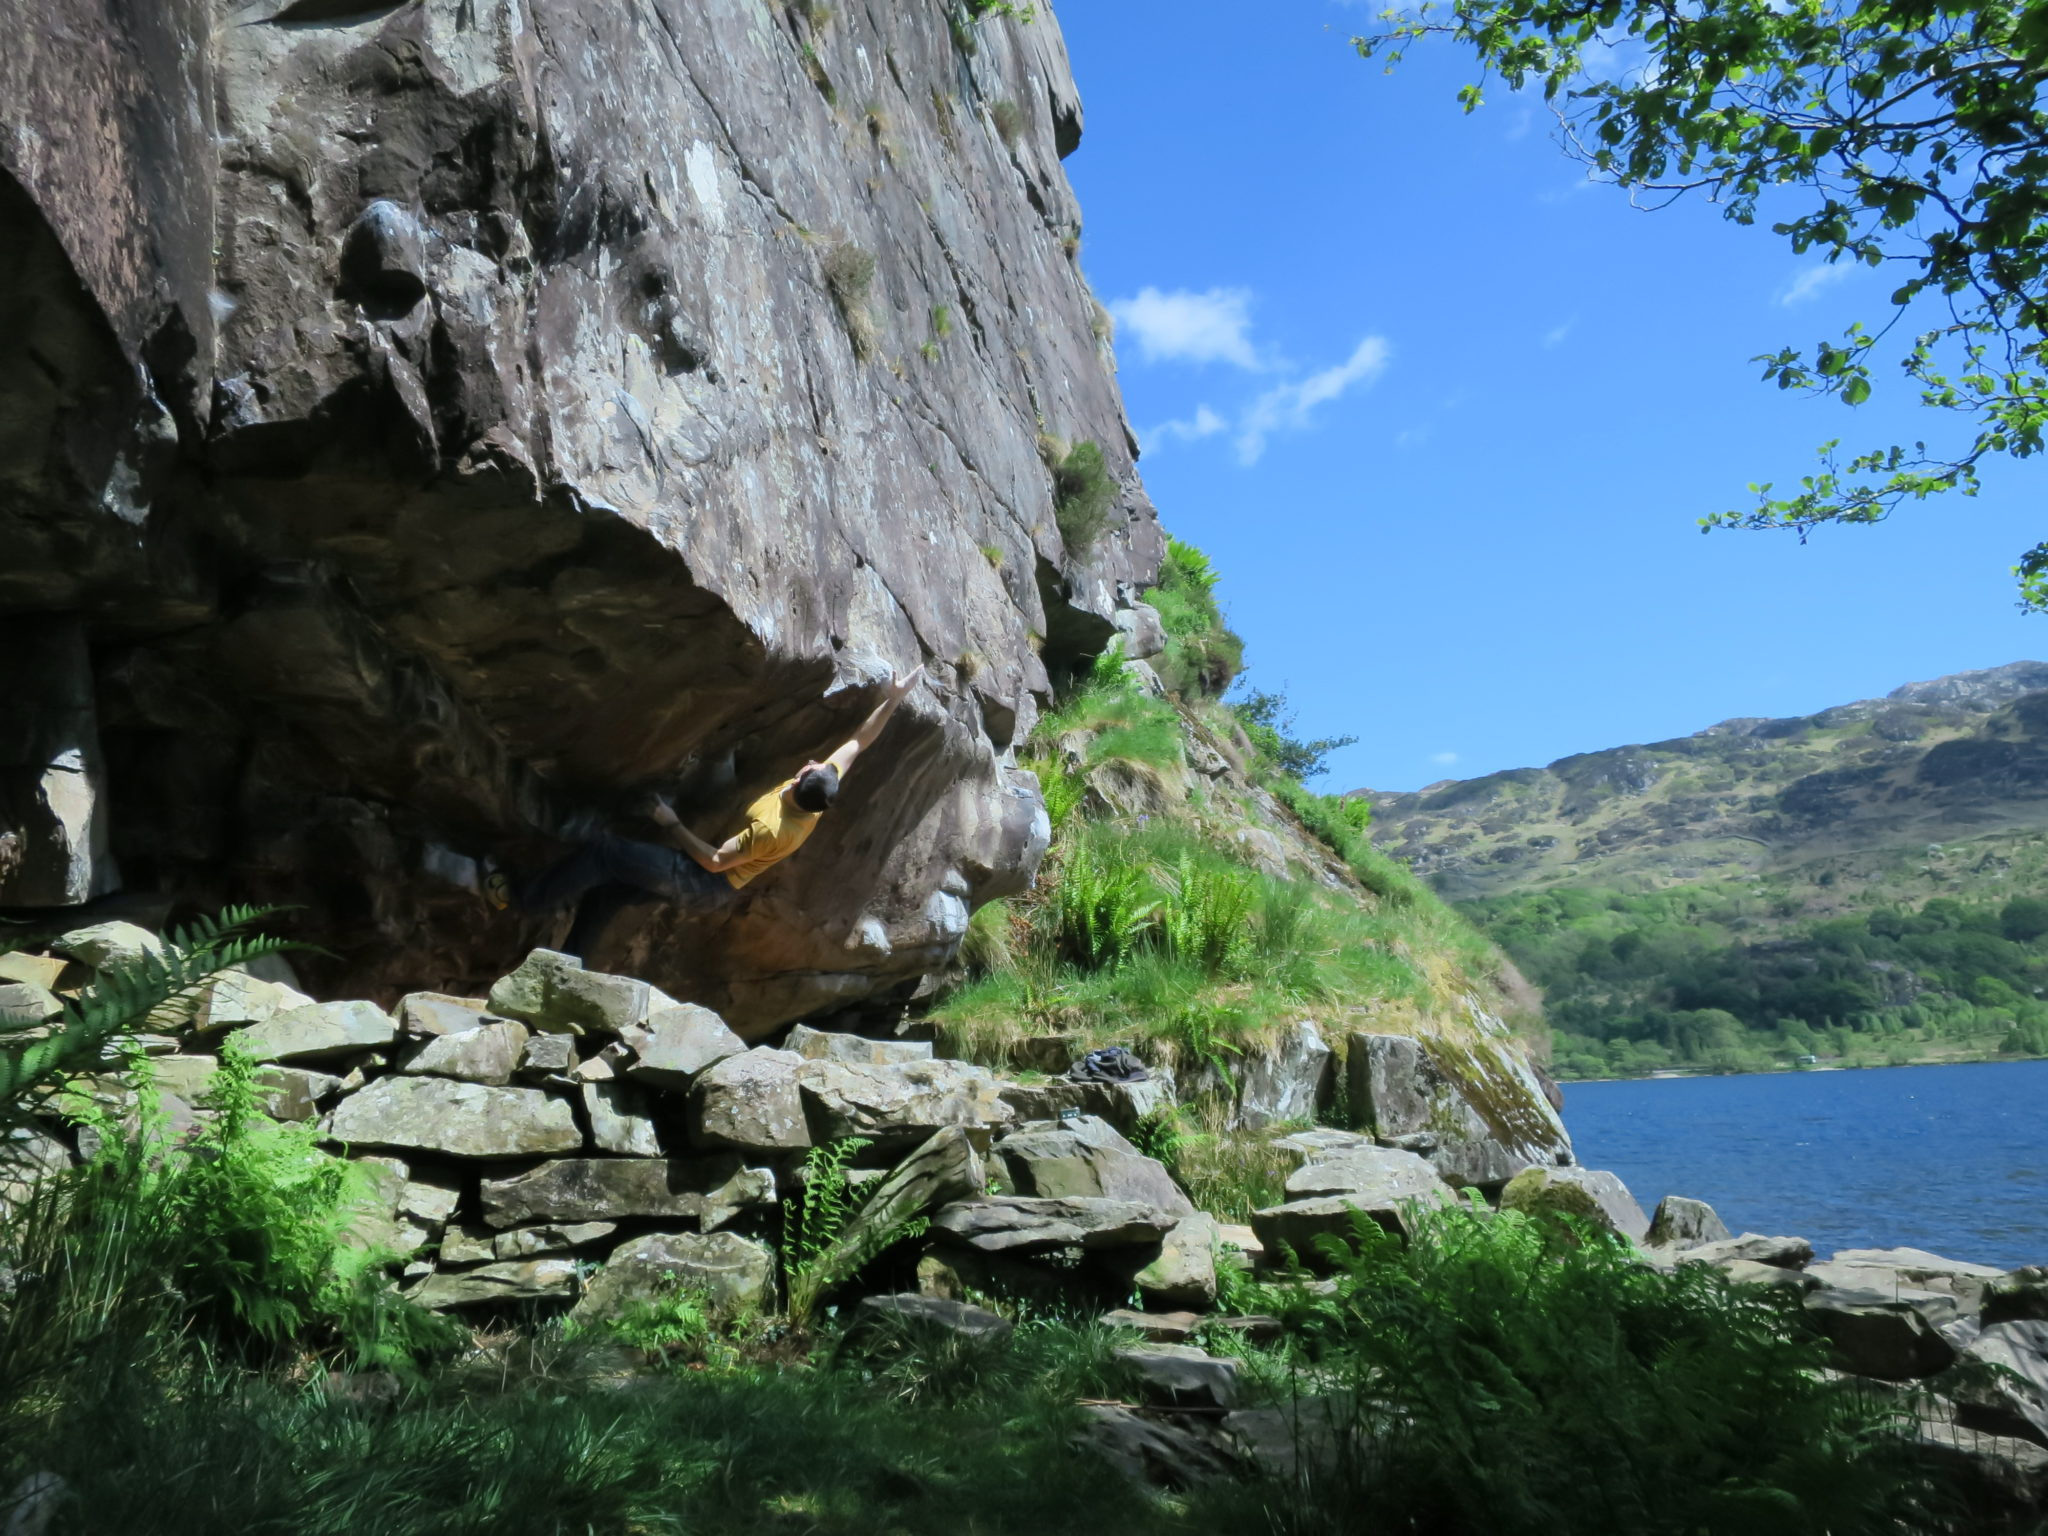 Outdoor guided bouldering in Snowdonia: Wales boulder coaching